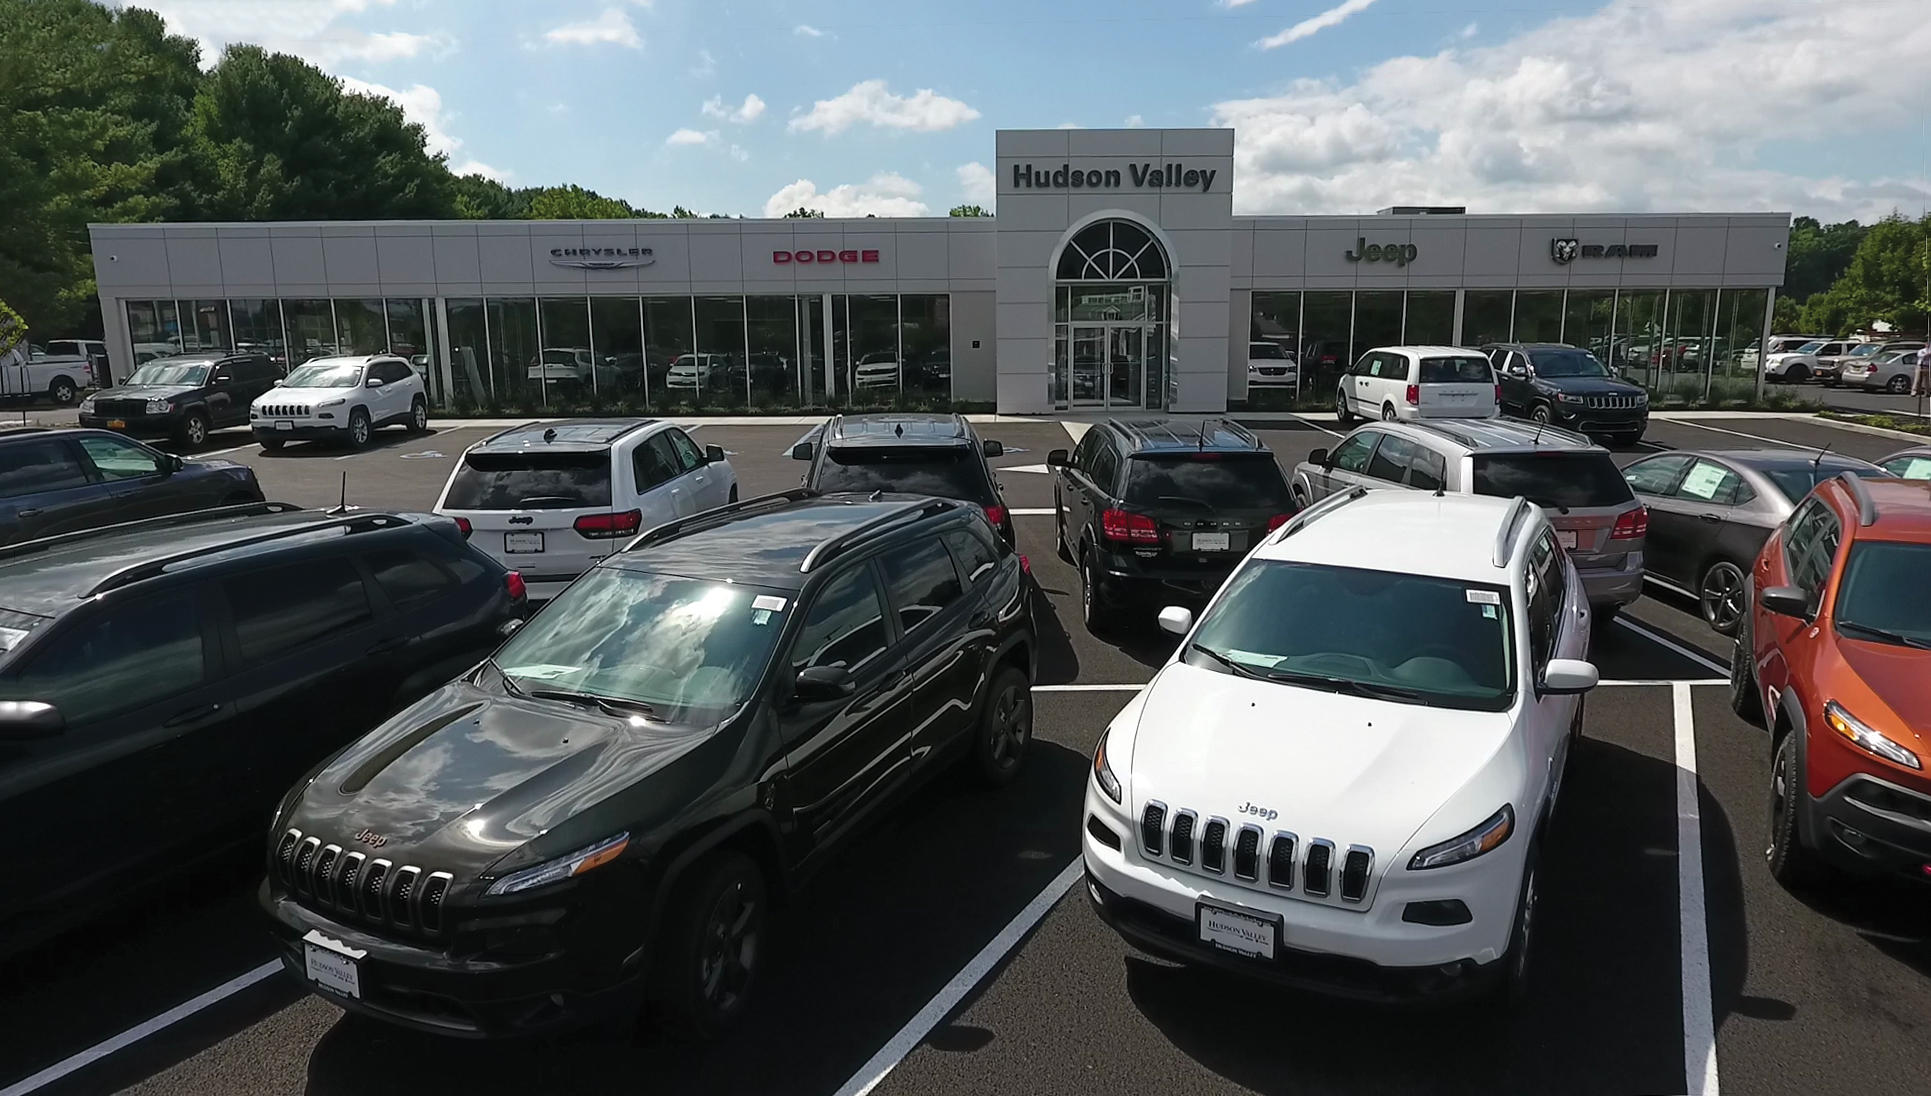 Hudson Valley Chrysler Jeep Dodge Ram in Newburgh, NY ...